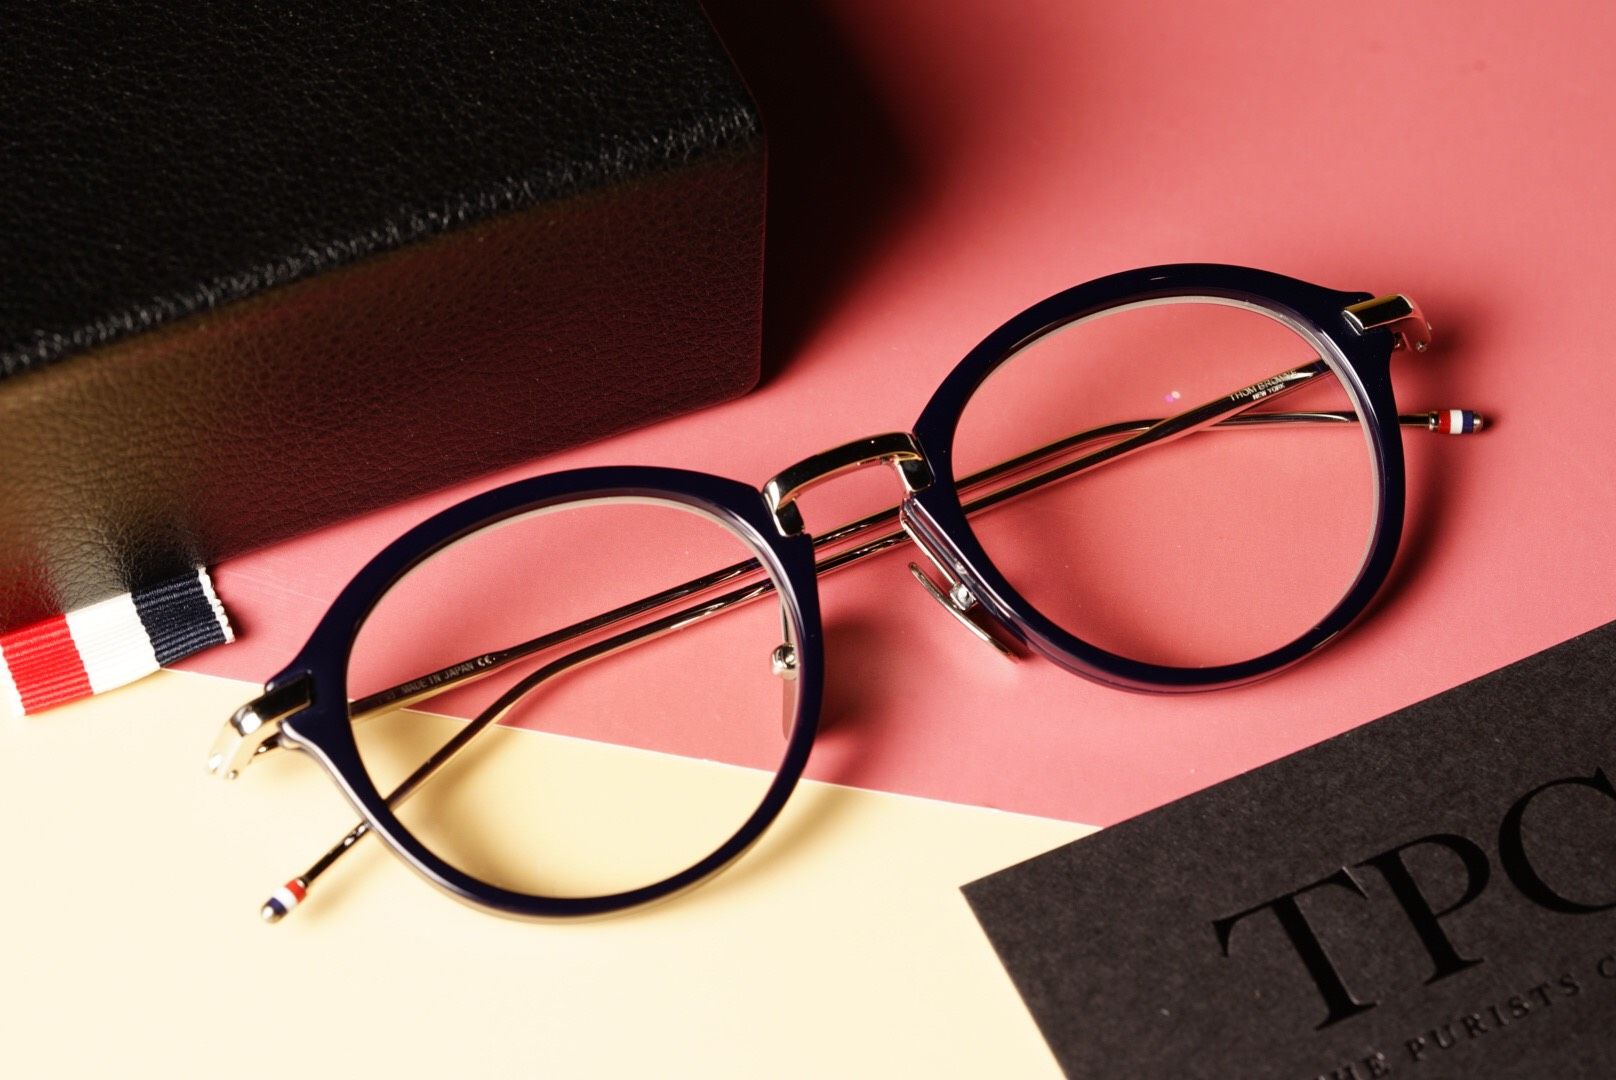 TB011 Silver And Black Round Glasses